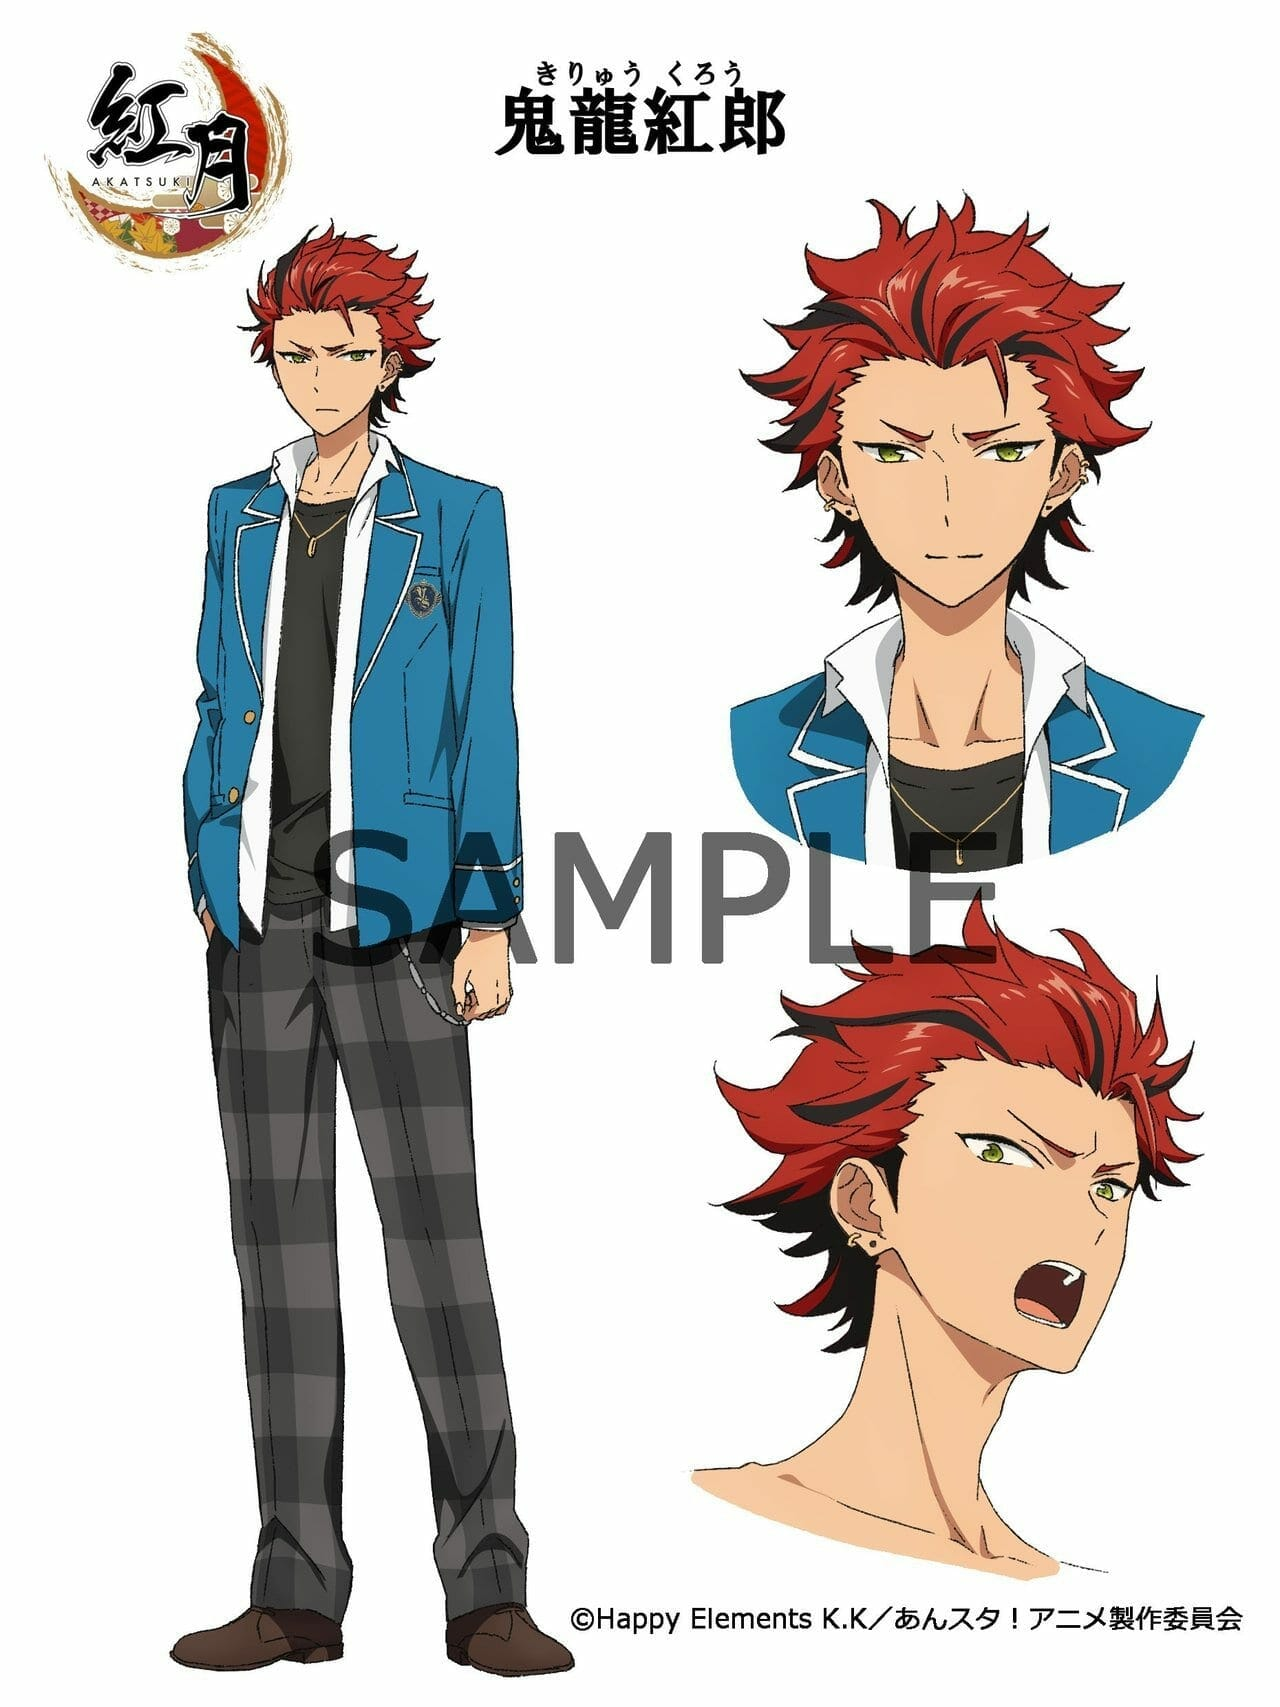 Akatsuki - New Unit Character Visuals for Ensemble Stars! Anime Have Been Released